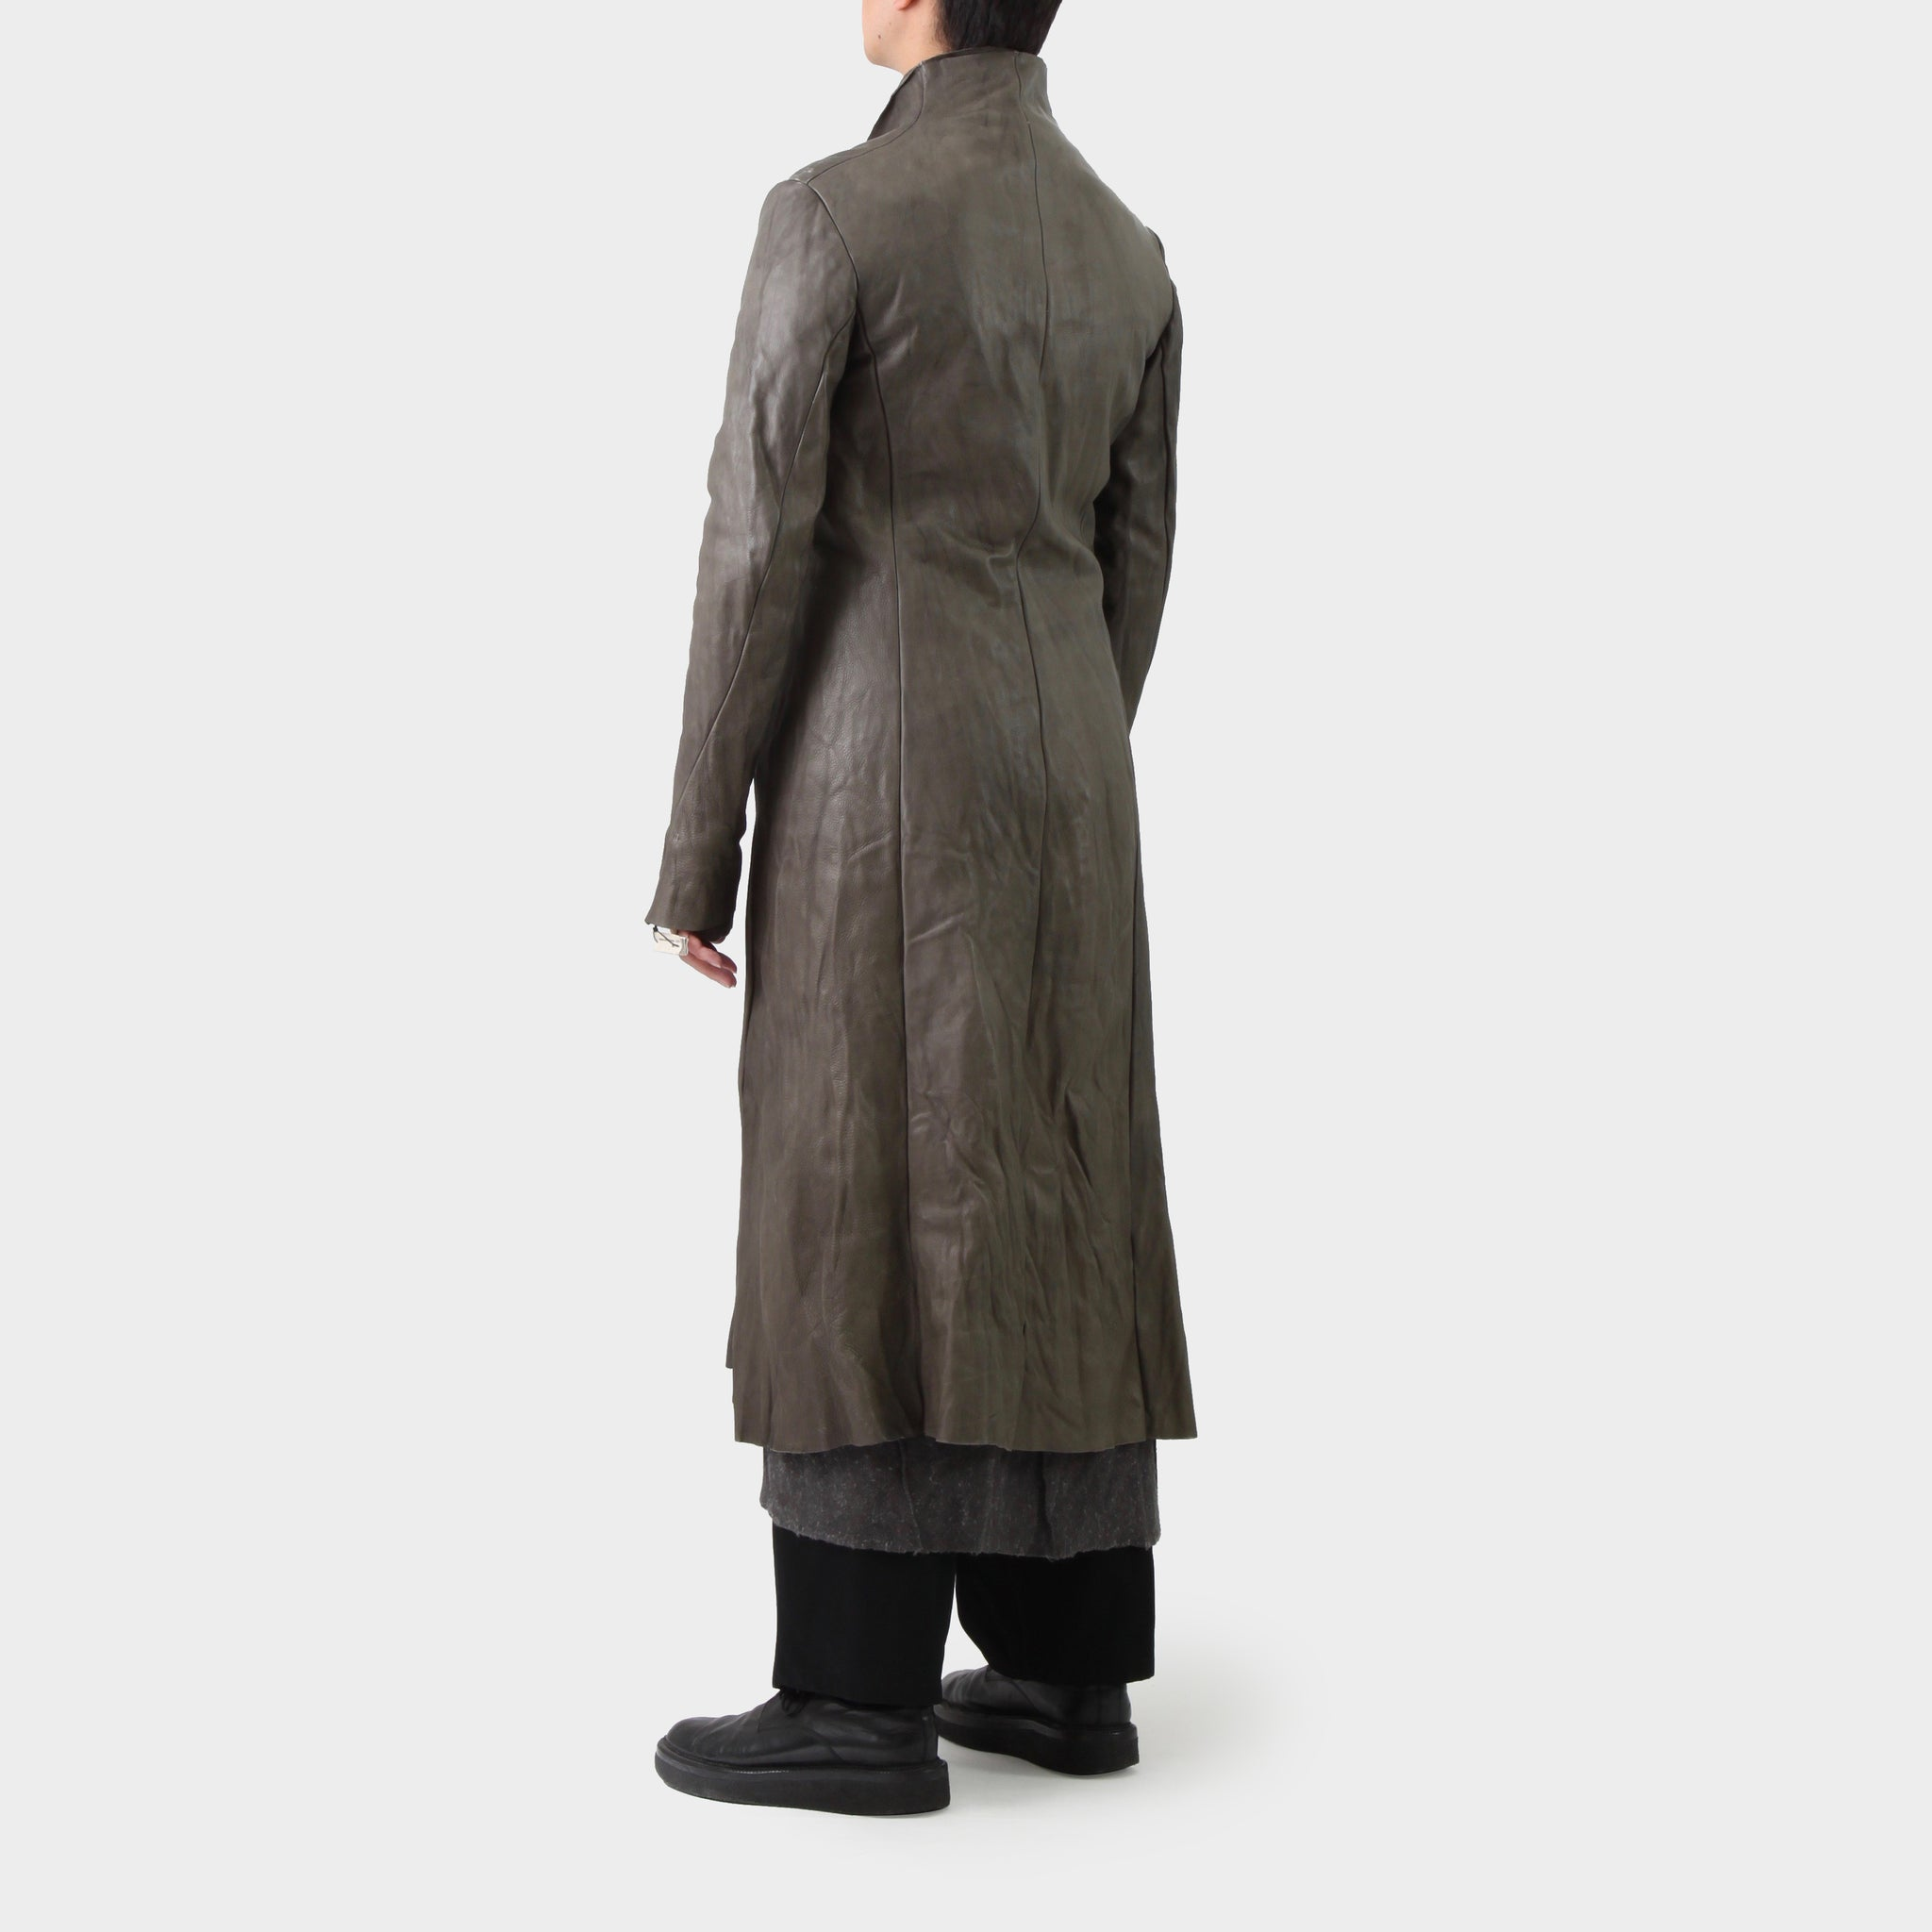 MA+ Carbon Leather Long Coat.   Washed cow leather, Contrast Wool Lining, Sterling Silver Hook Closure and Cross Insignia at cuff.